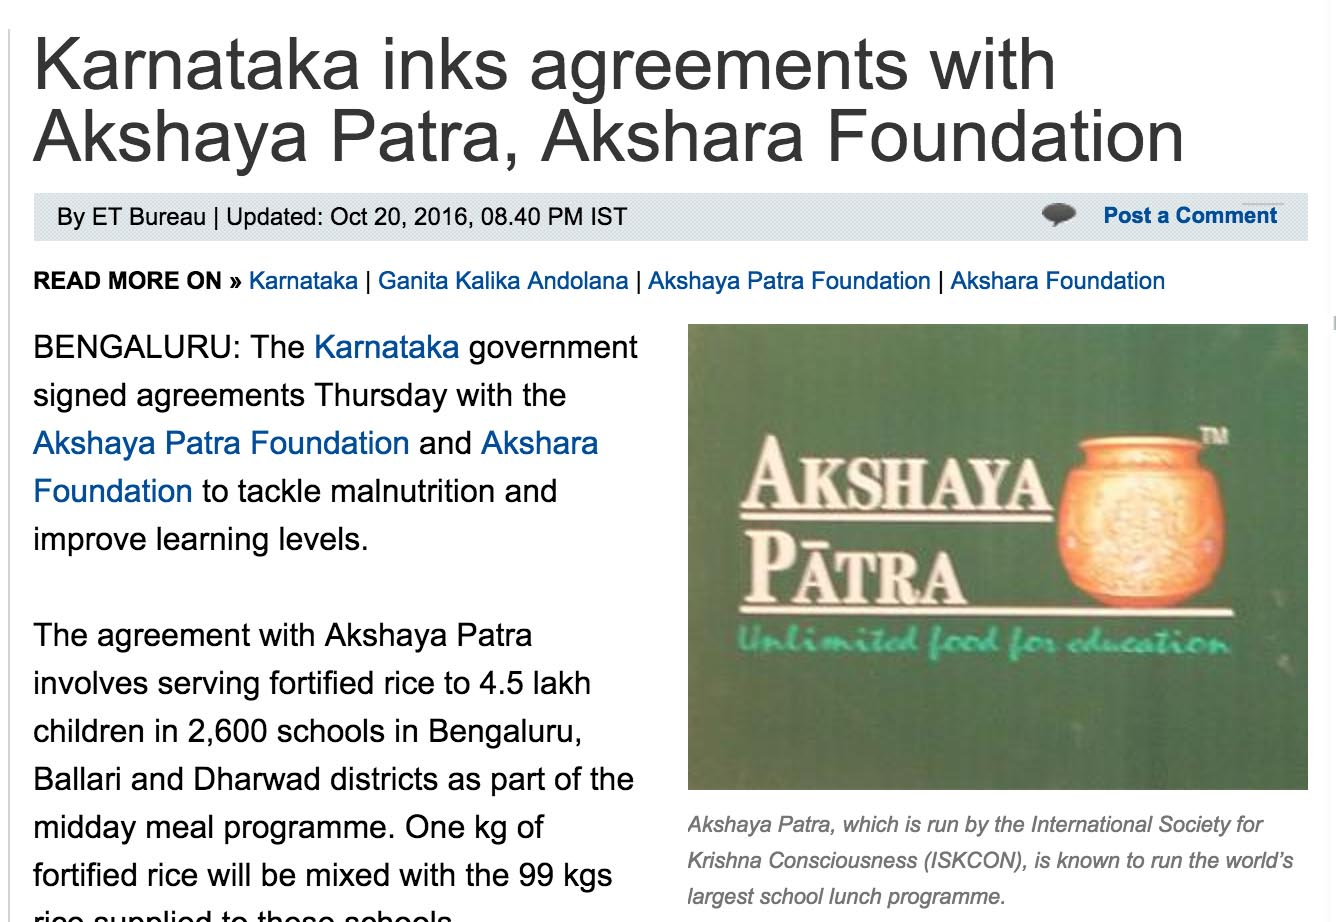 Karnataka inks agreement with Akshaya Patra, Akshara Foundation